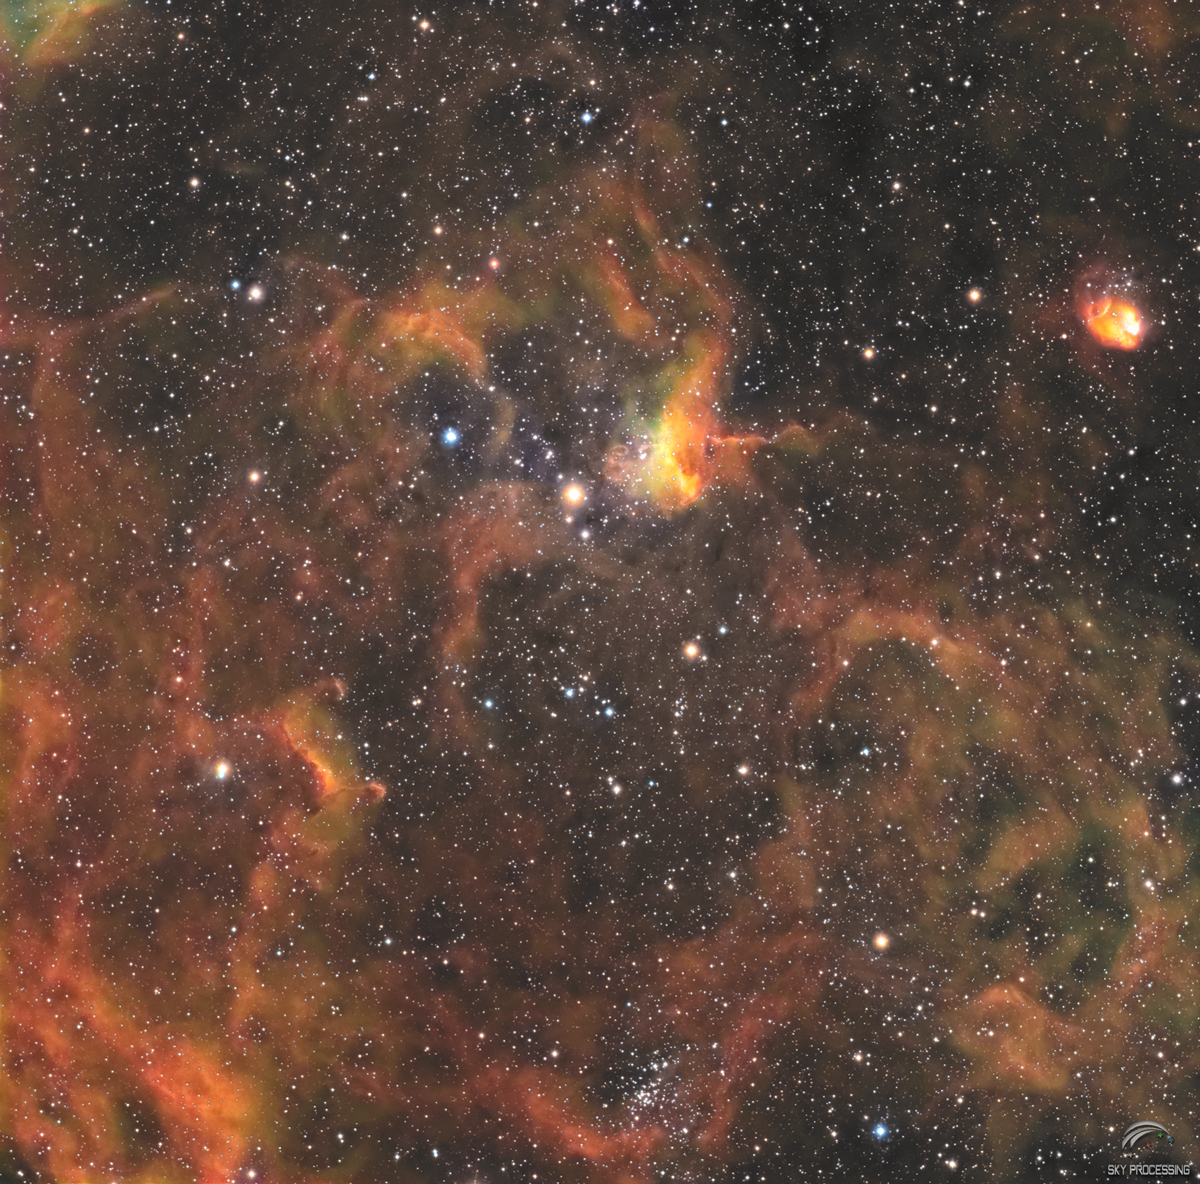 Ic417 et ngc 1931 29h ShoRvb 591201Ic417finsaturFd2